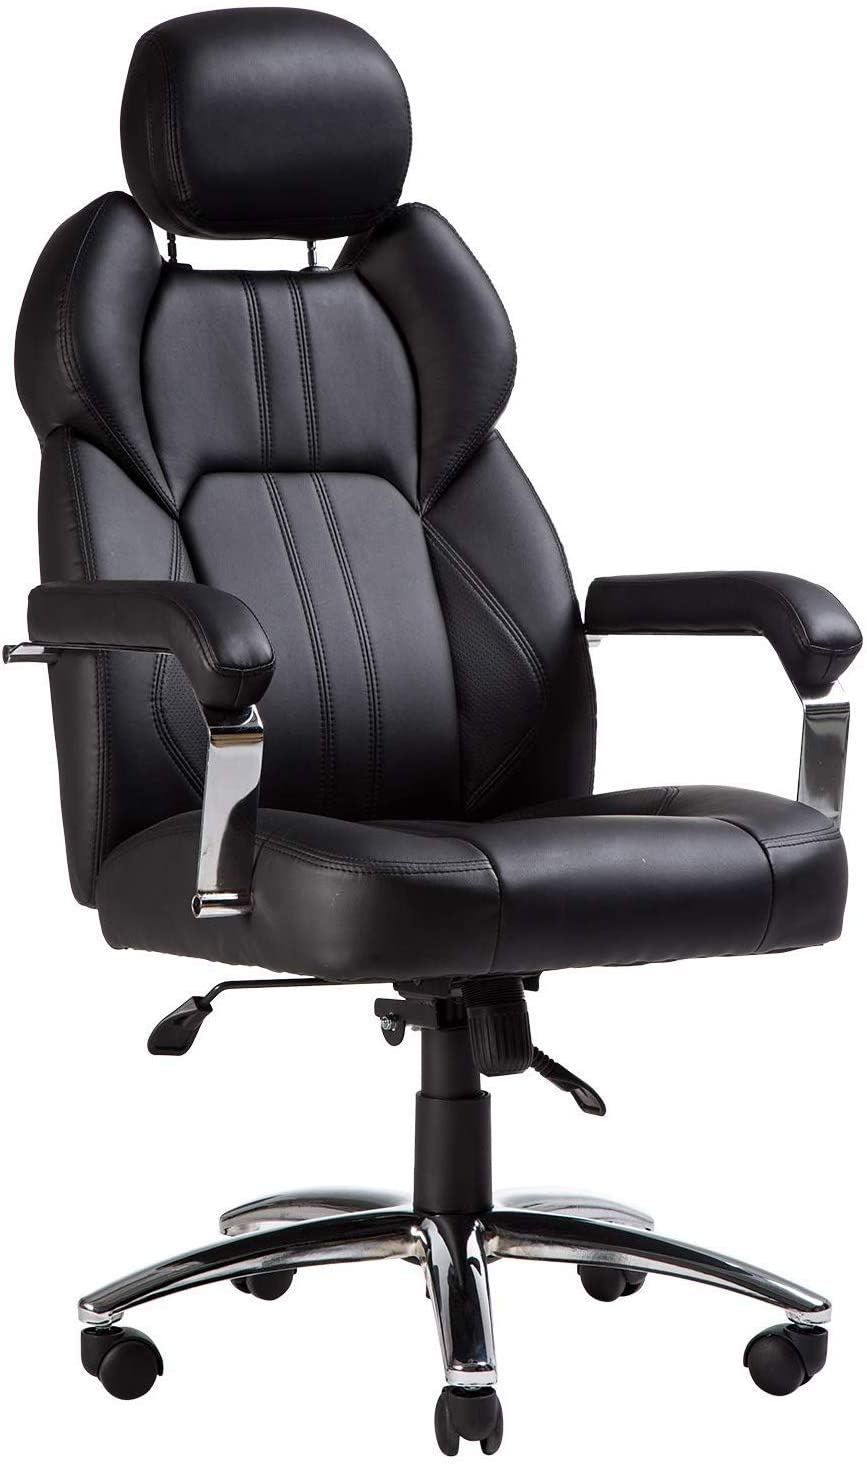 TOPSKY Executive Large Leather Chair with Adjustable Headrest High Back New Black